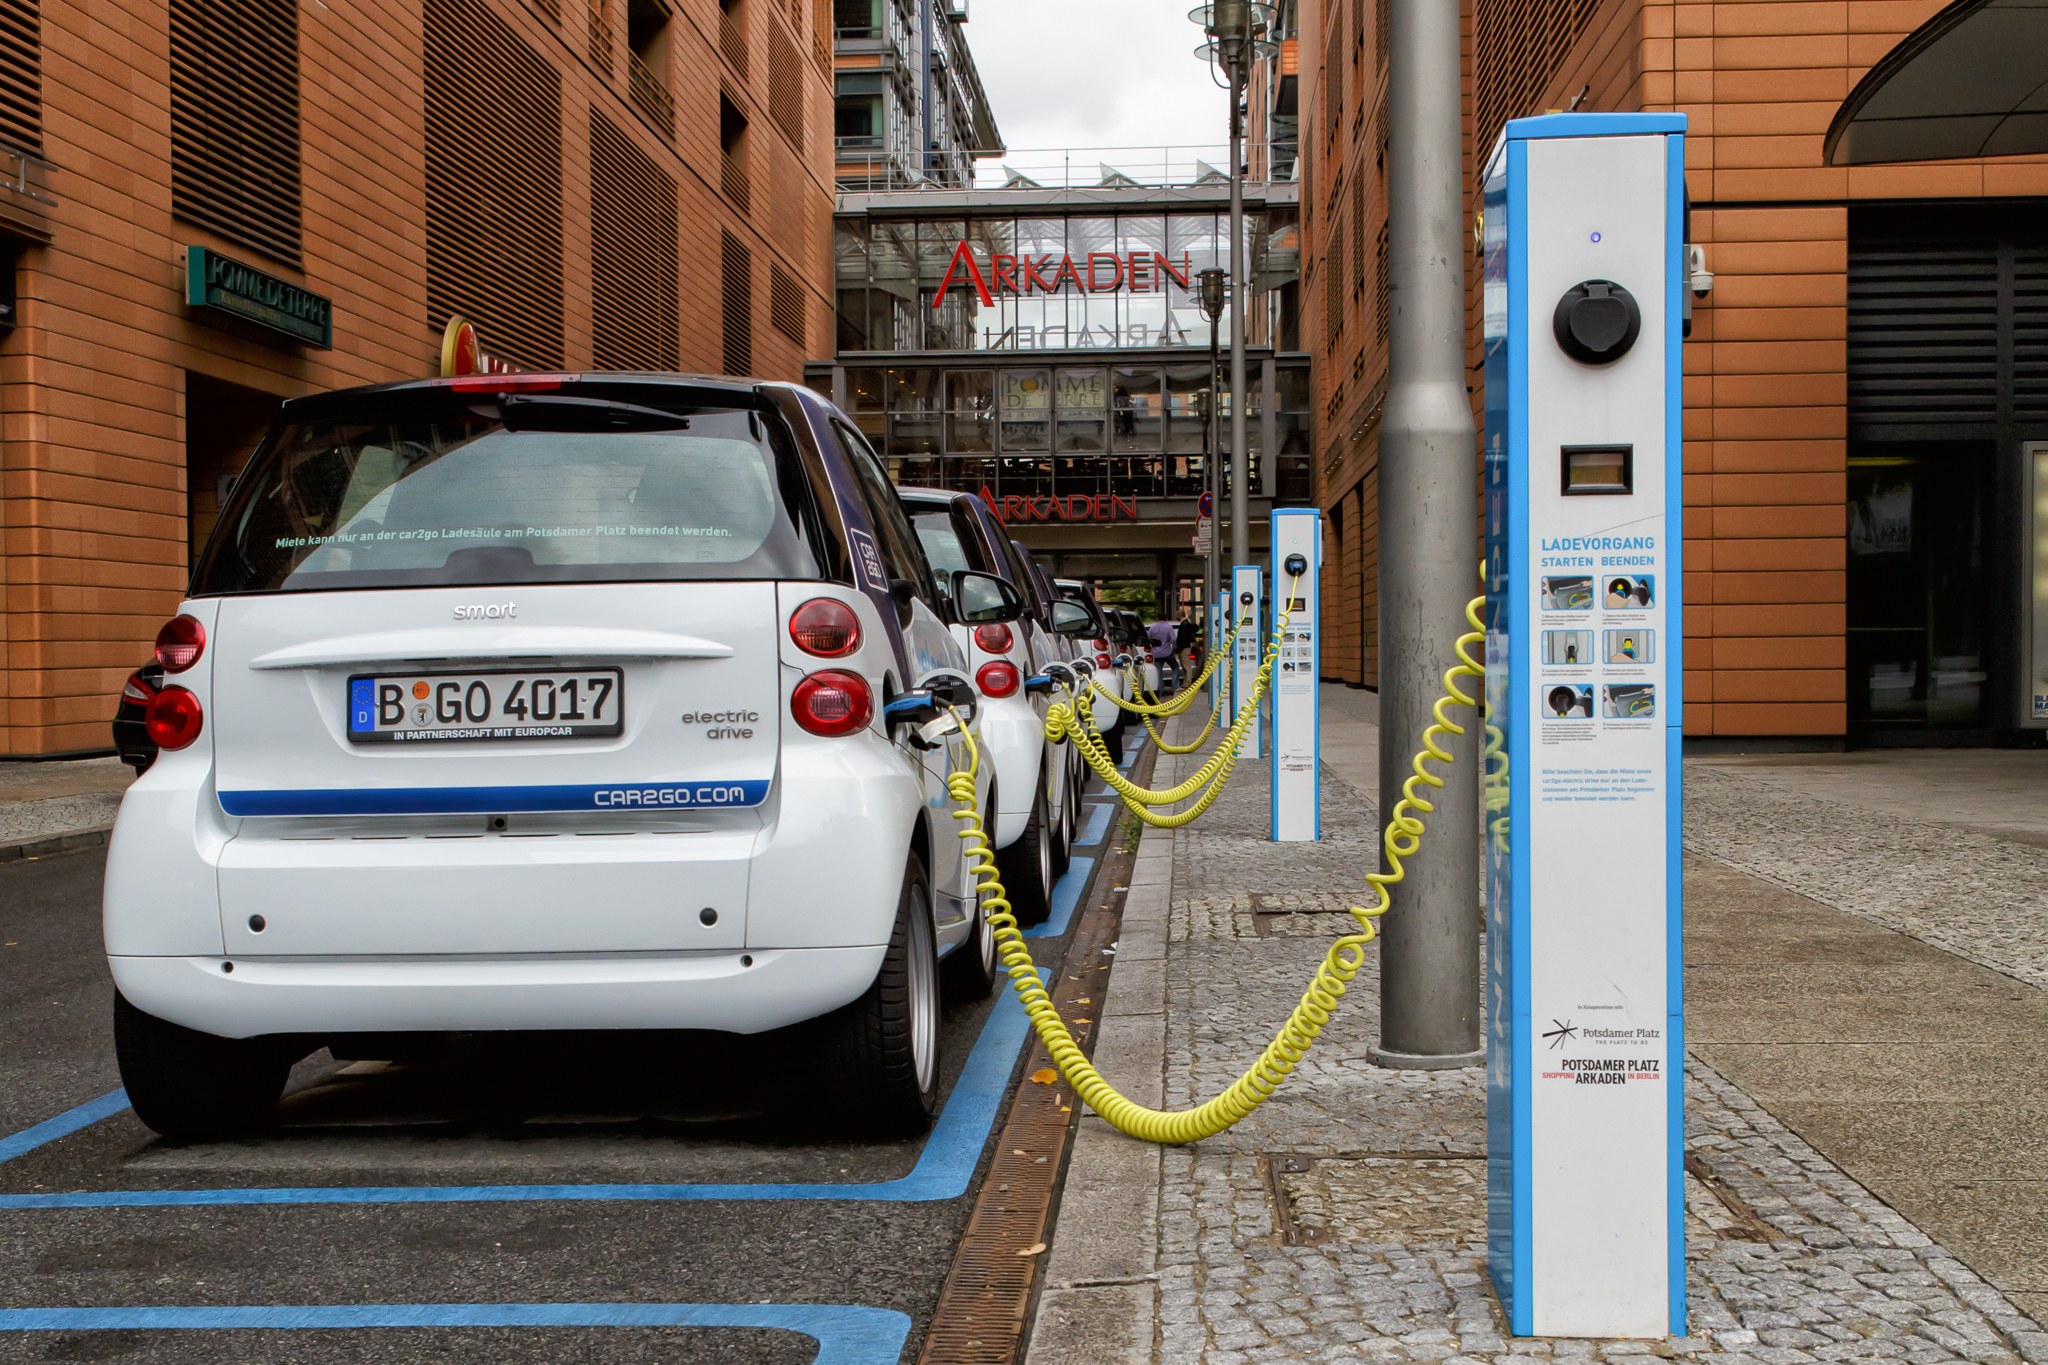 Electric car charging - 3